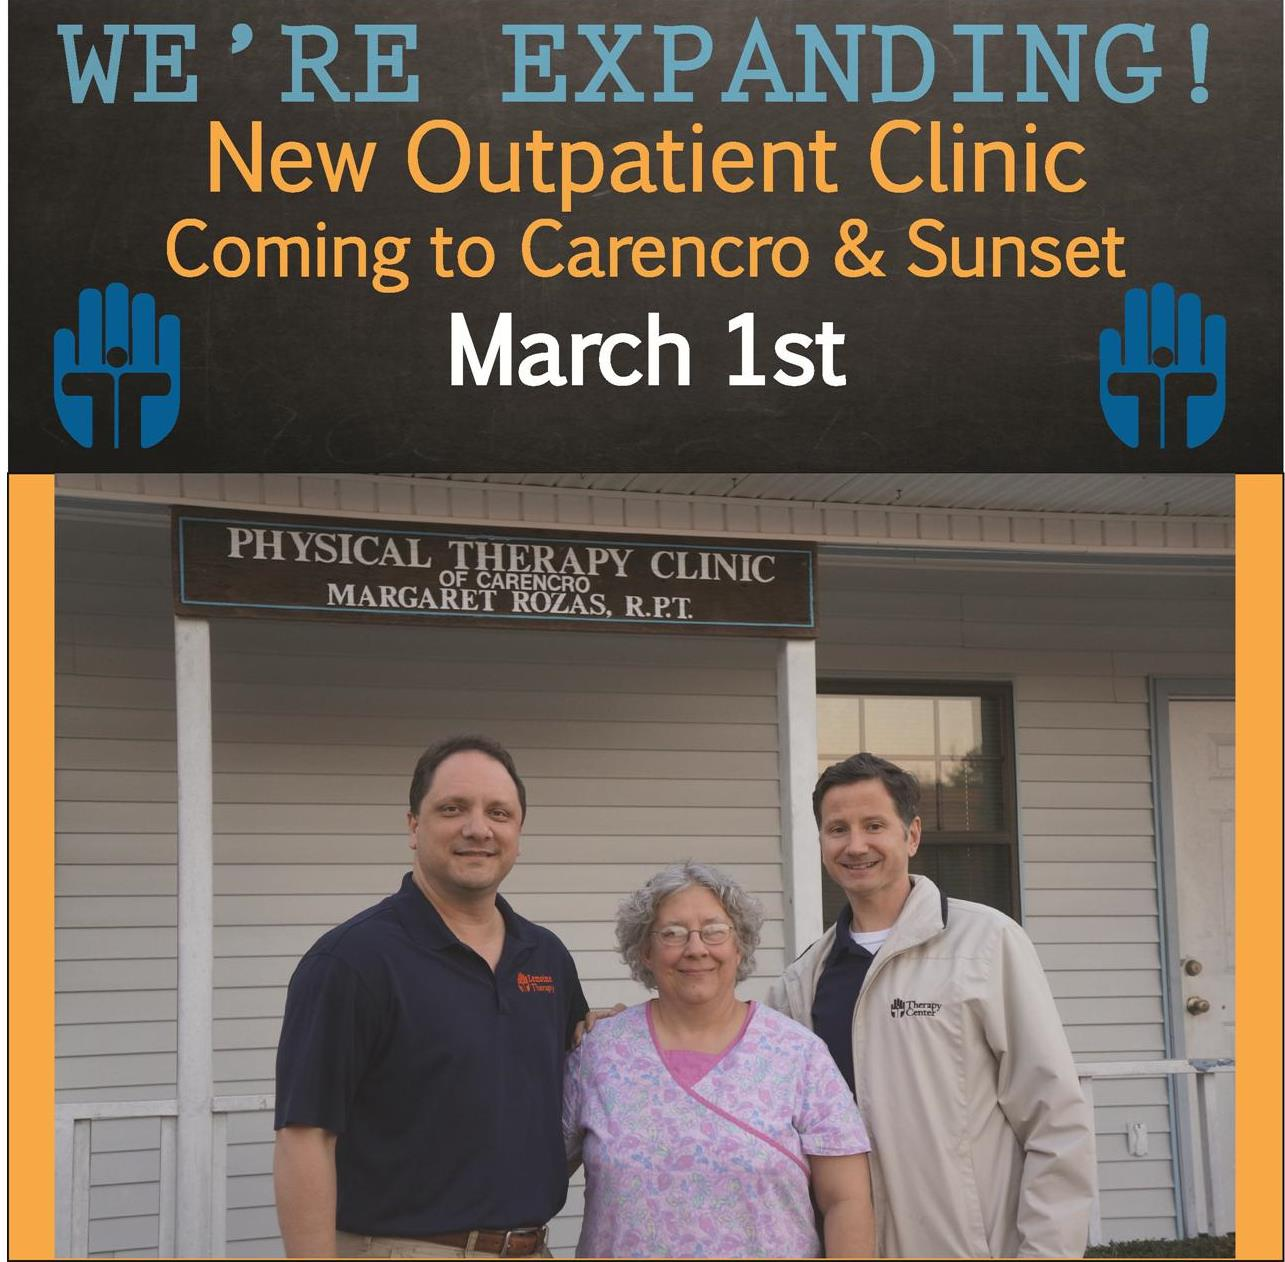 Carencro Sunset Outpatient CLinic Therapy Center